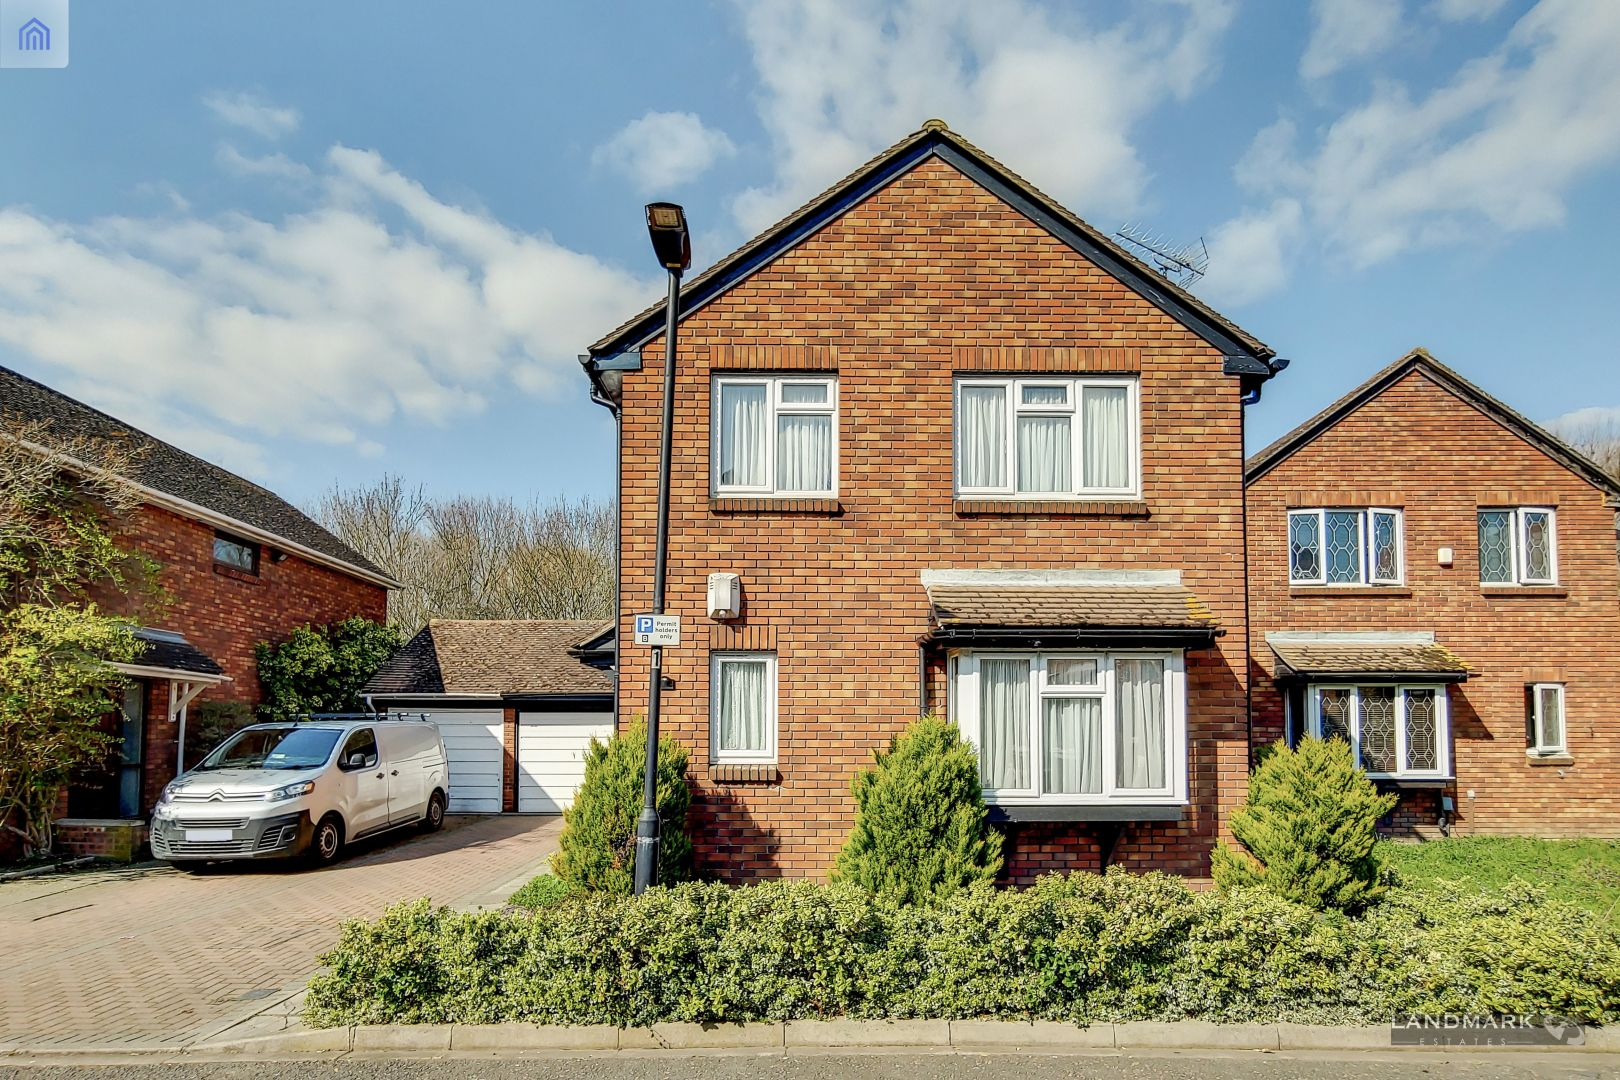 4 bed house for sale in Chichester Close, E6